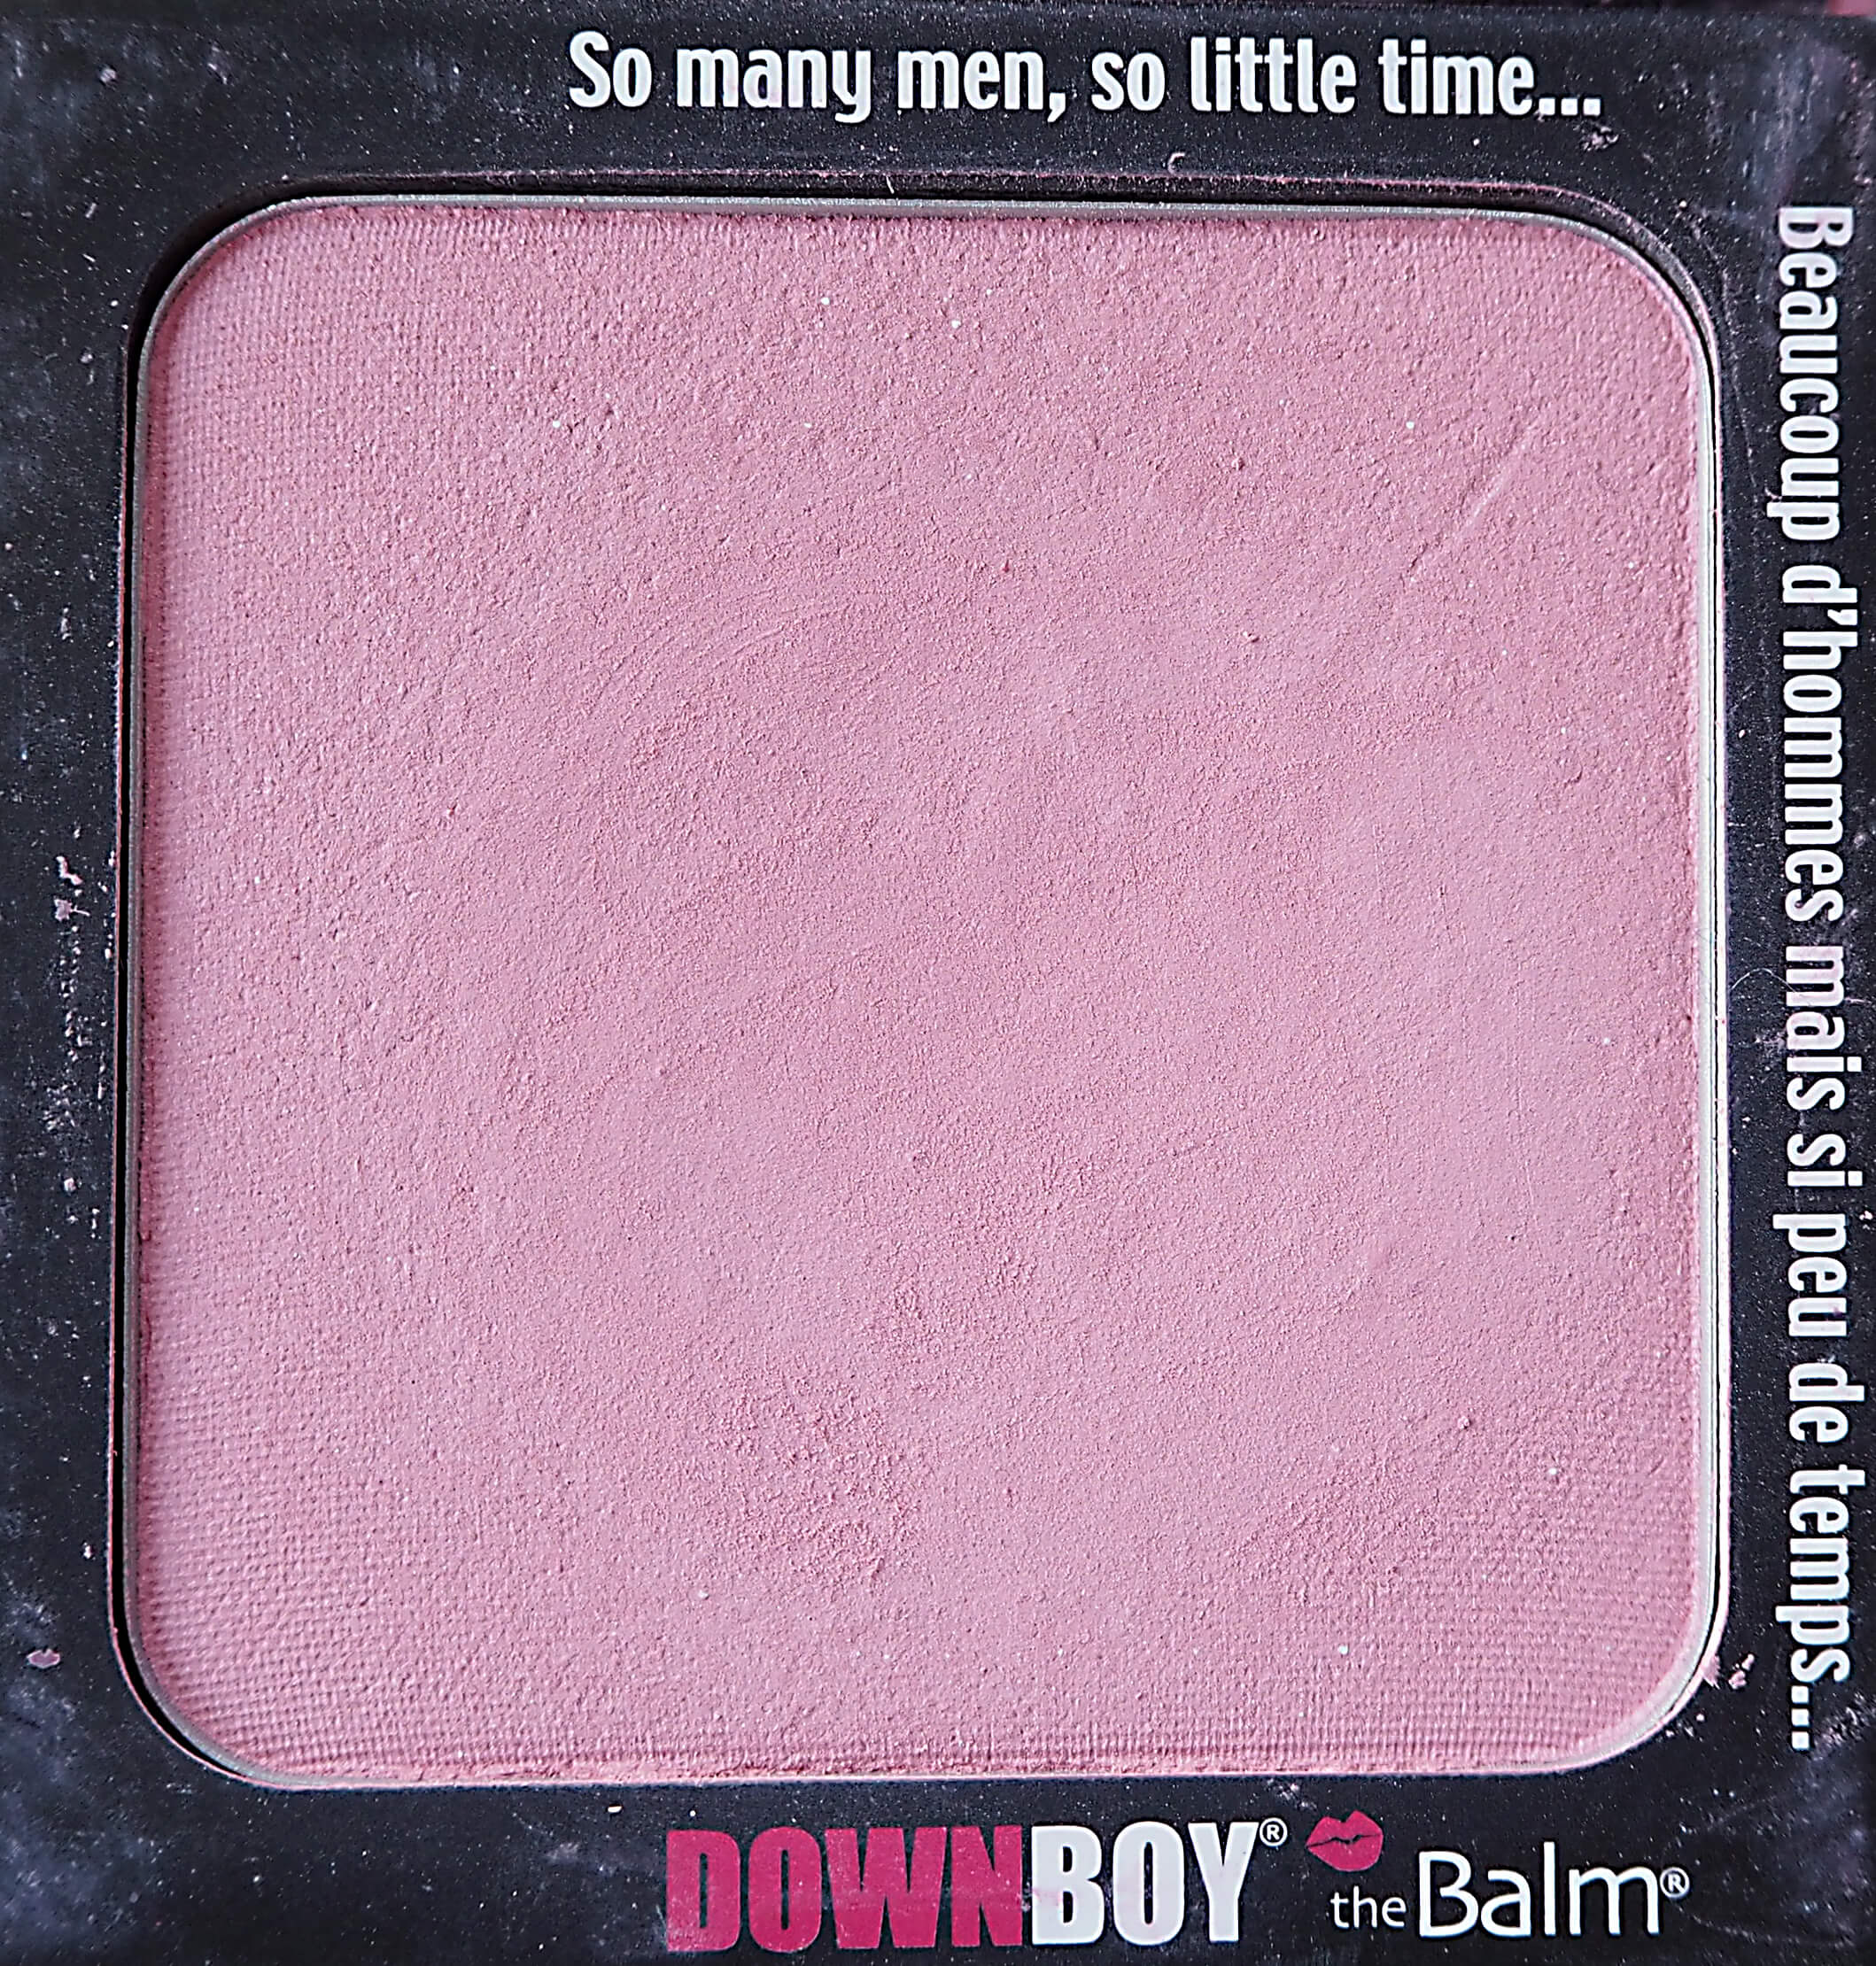 Kolor theBalm DOWN BOY